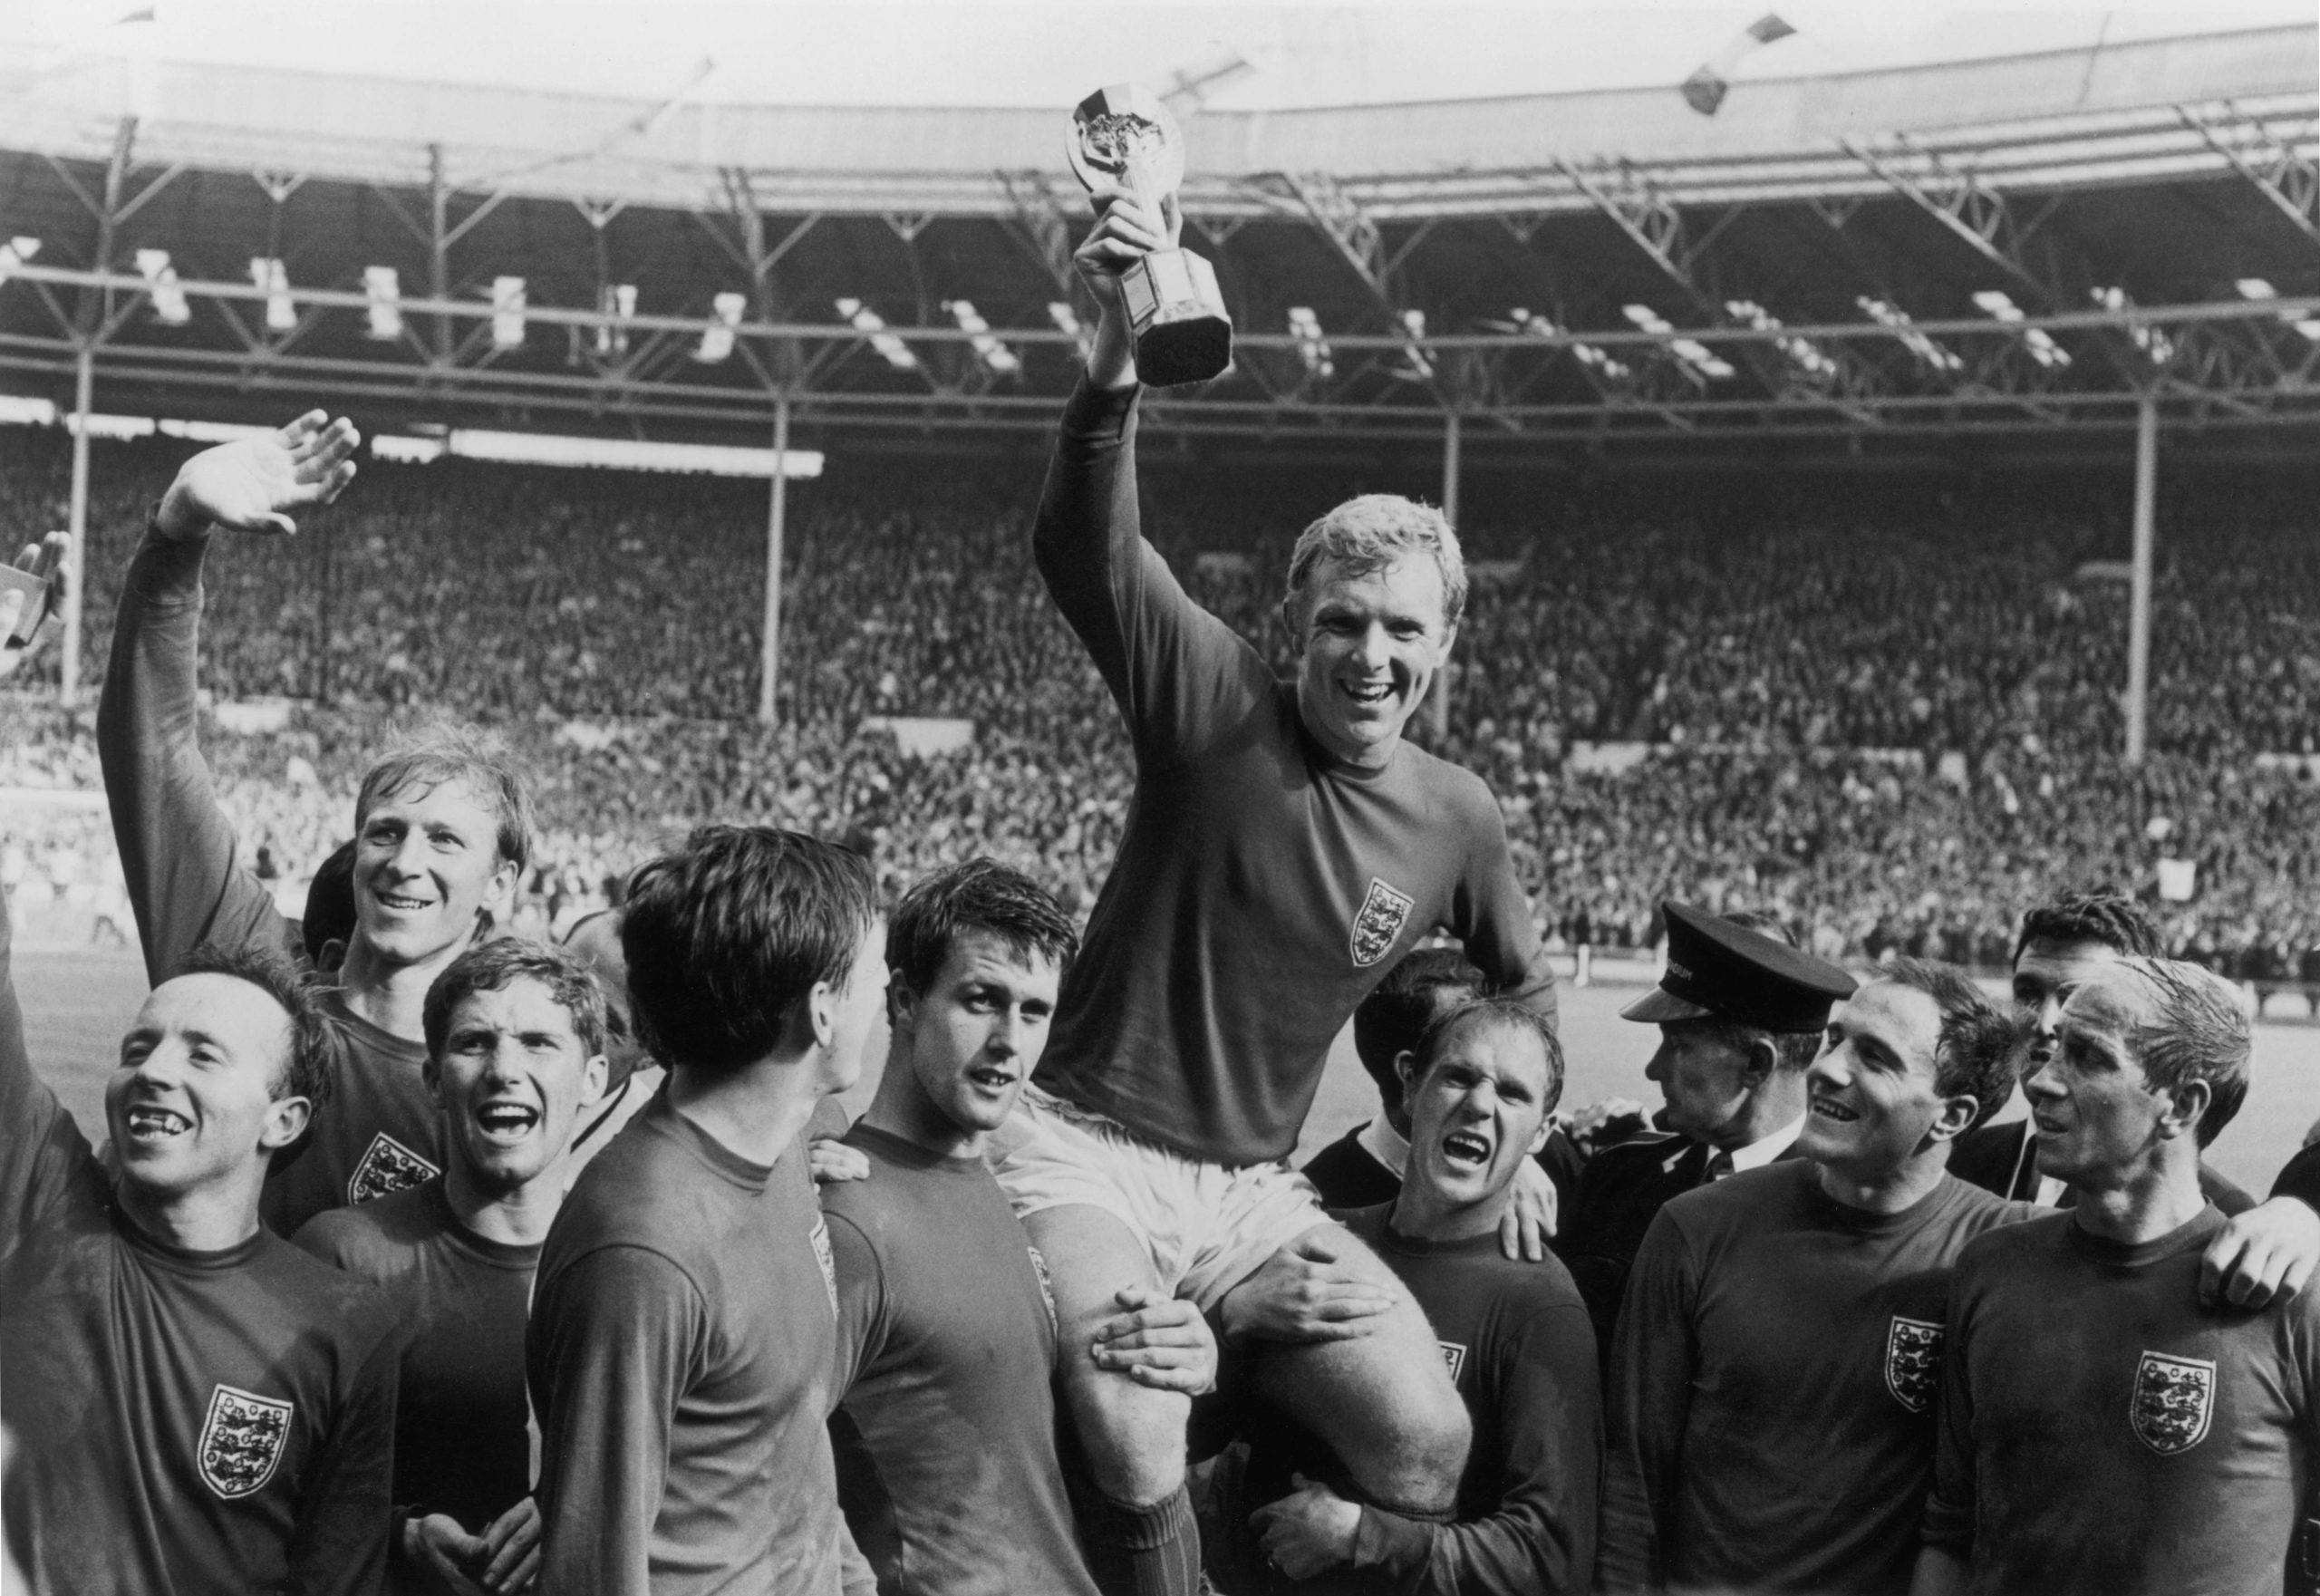 The joy of only winning once: why England should be proud of 1966